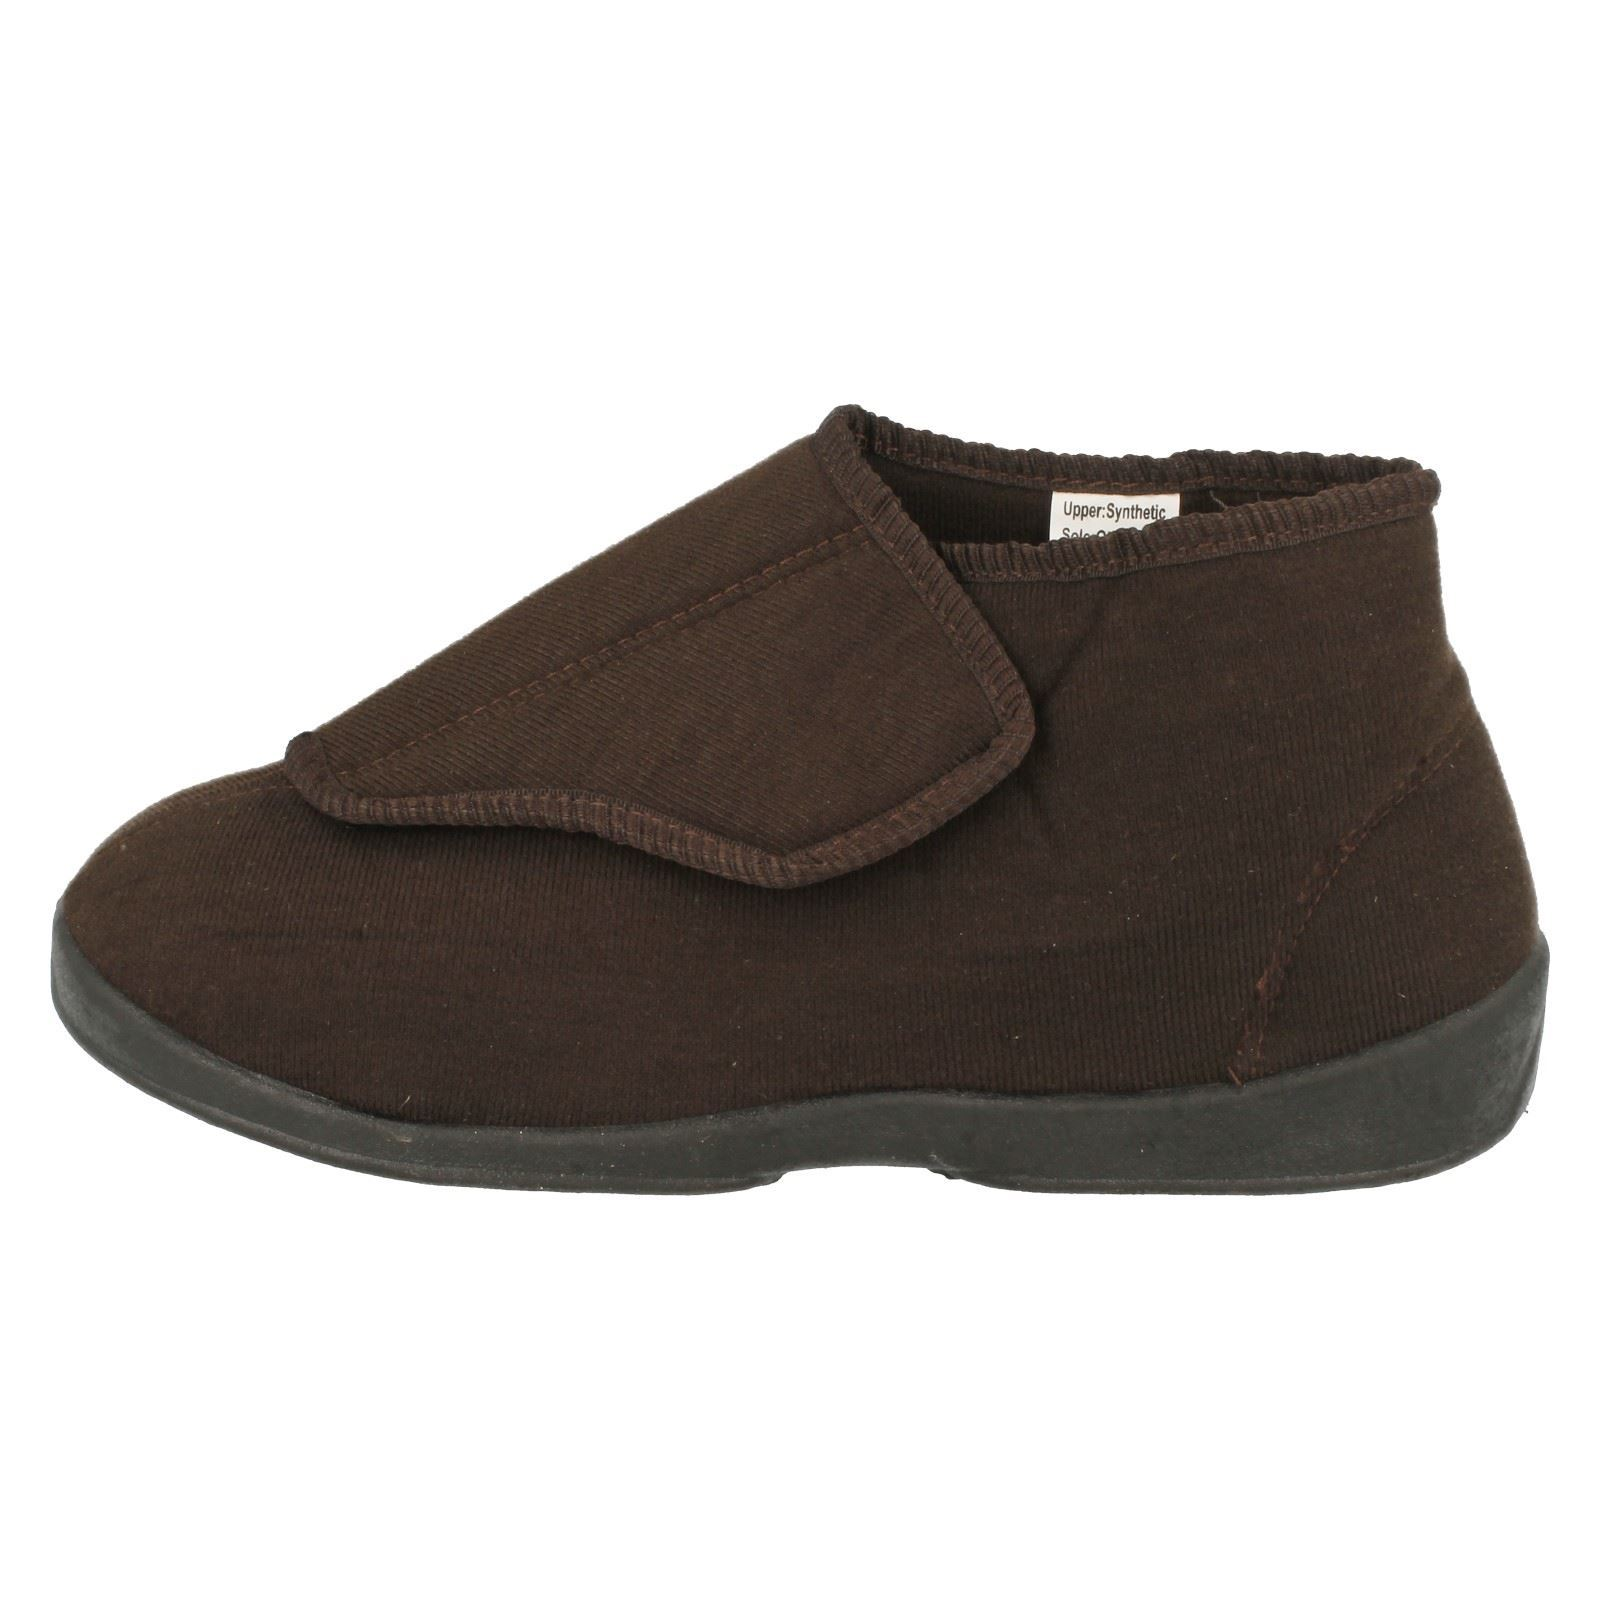 Mens-Natureform-Wide-Fit-Boot-Slippers-039-Arthur-039-Label-K